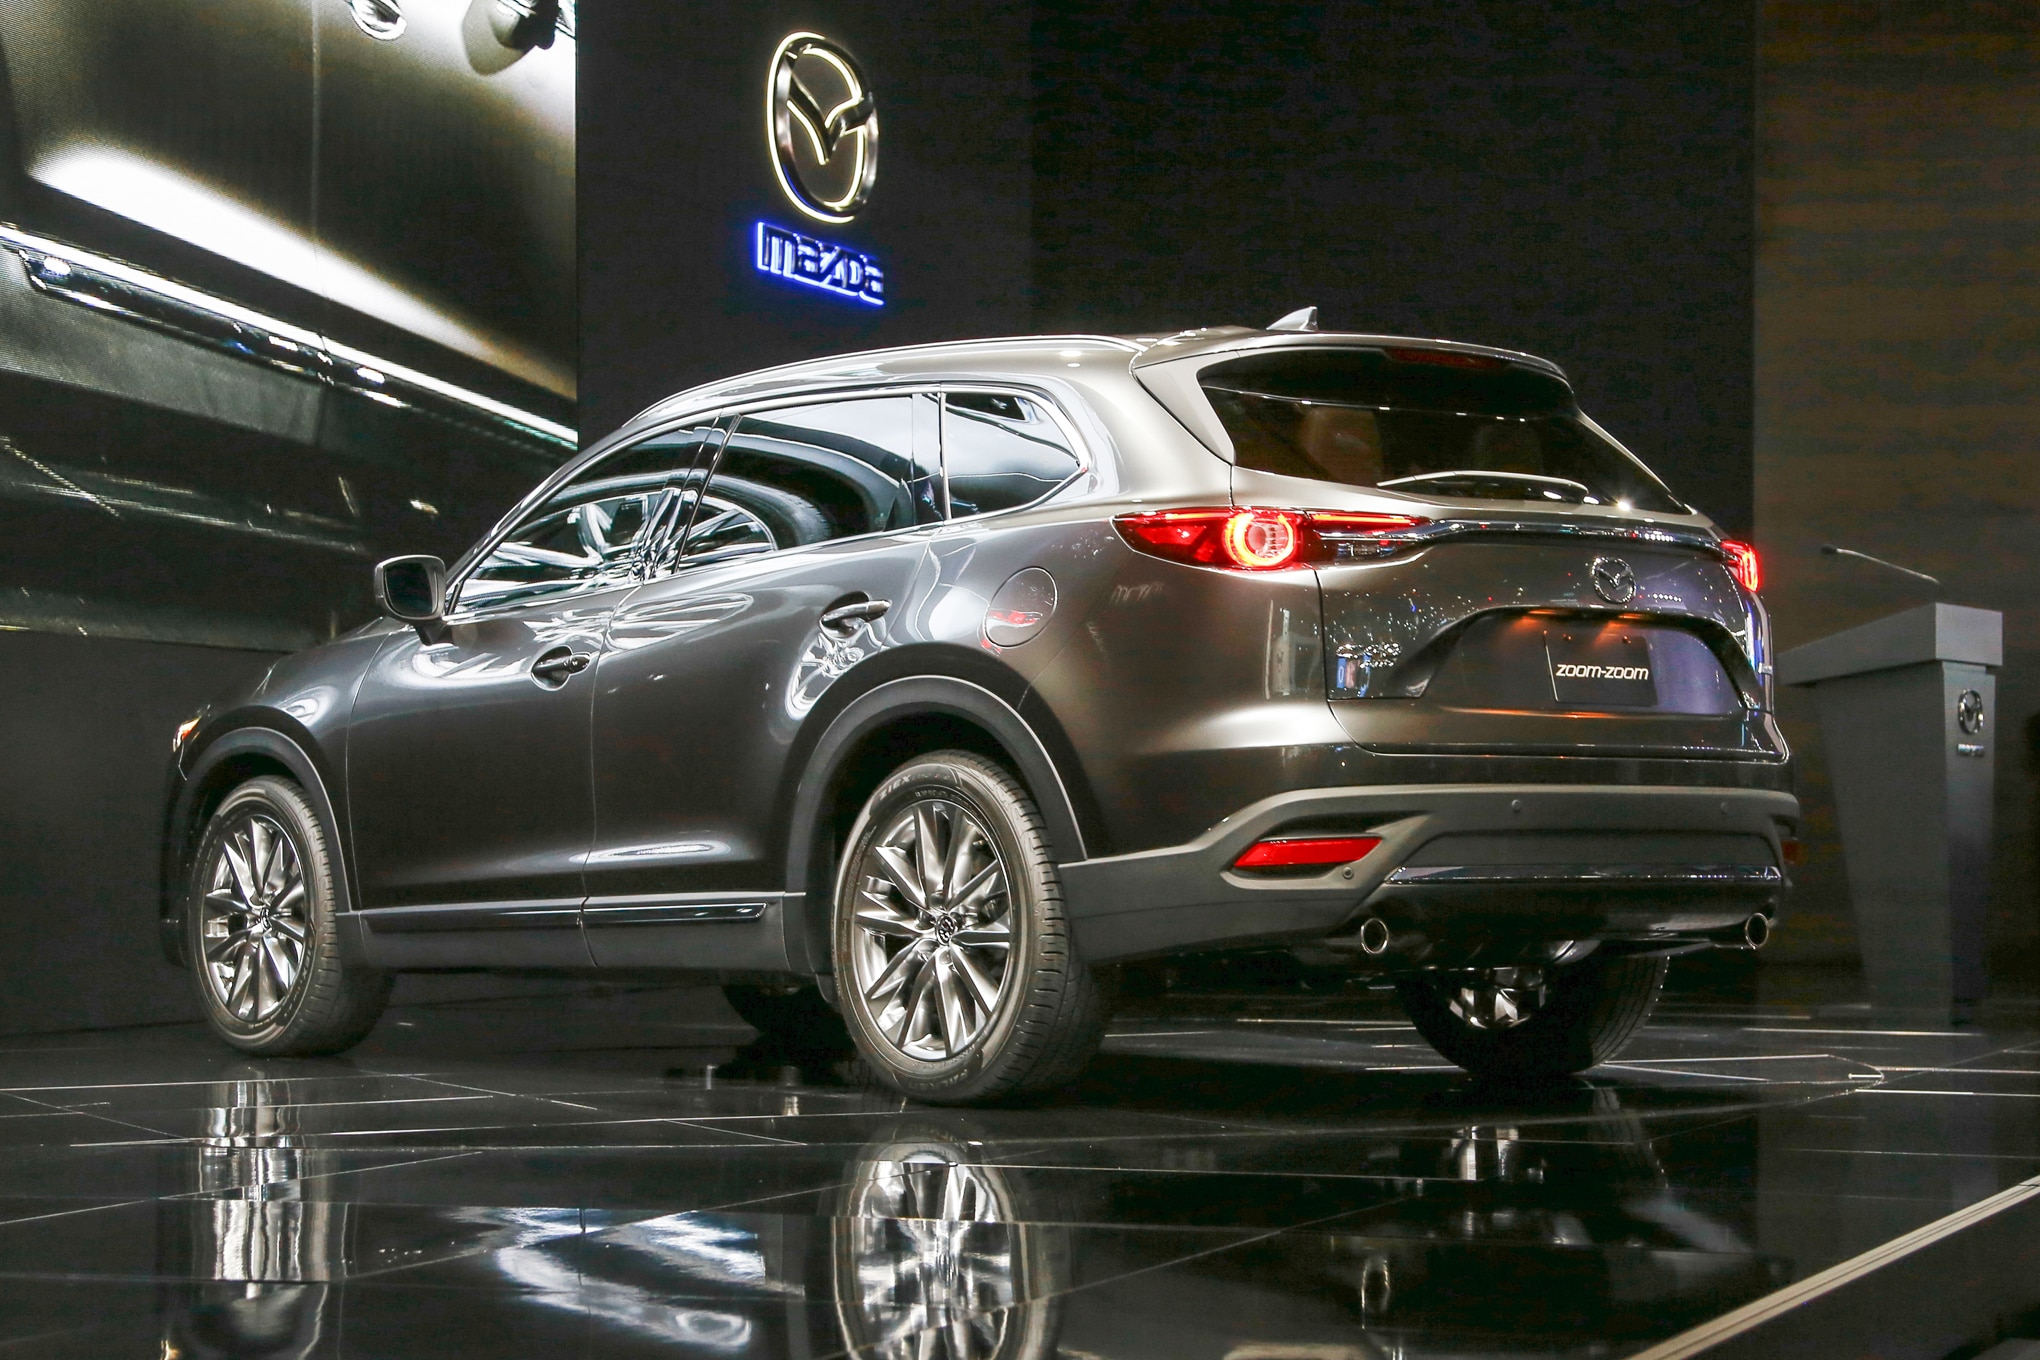 http://st.automobilemag.com/uploads/sites/11/2015/11/2016-Mazda-CX-9-rear-three-quarters3.jpg